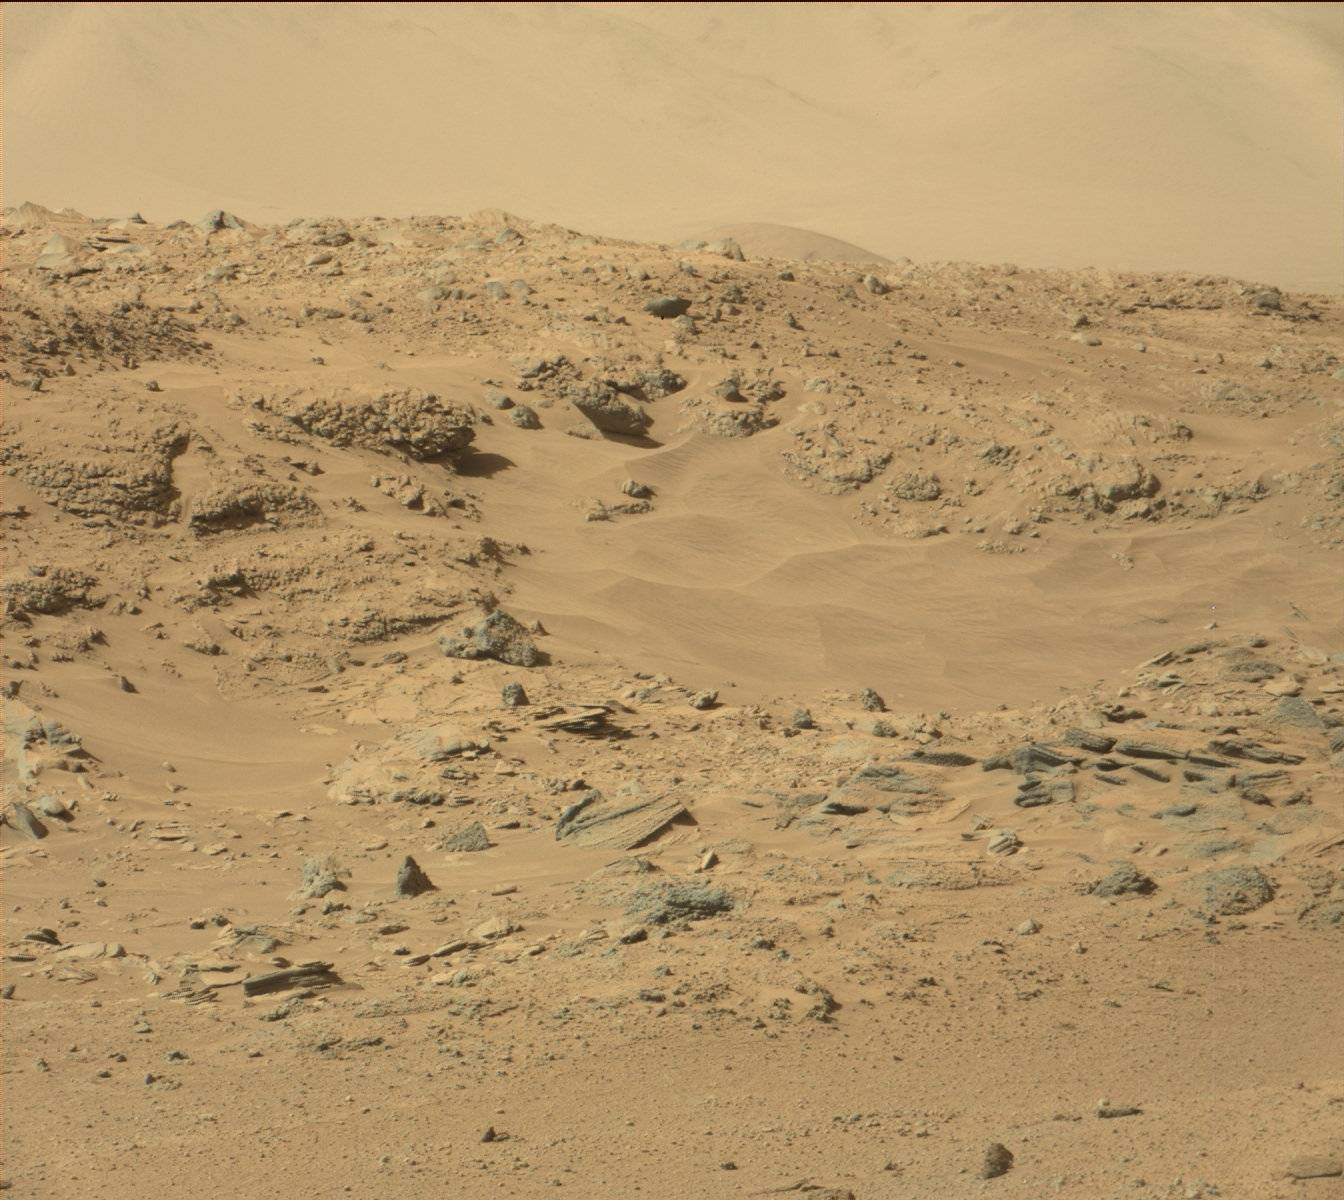 alien base on mars - photo #29